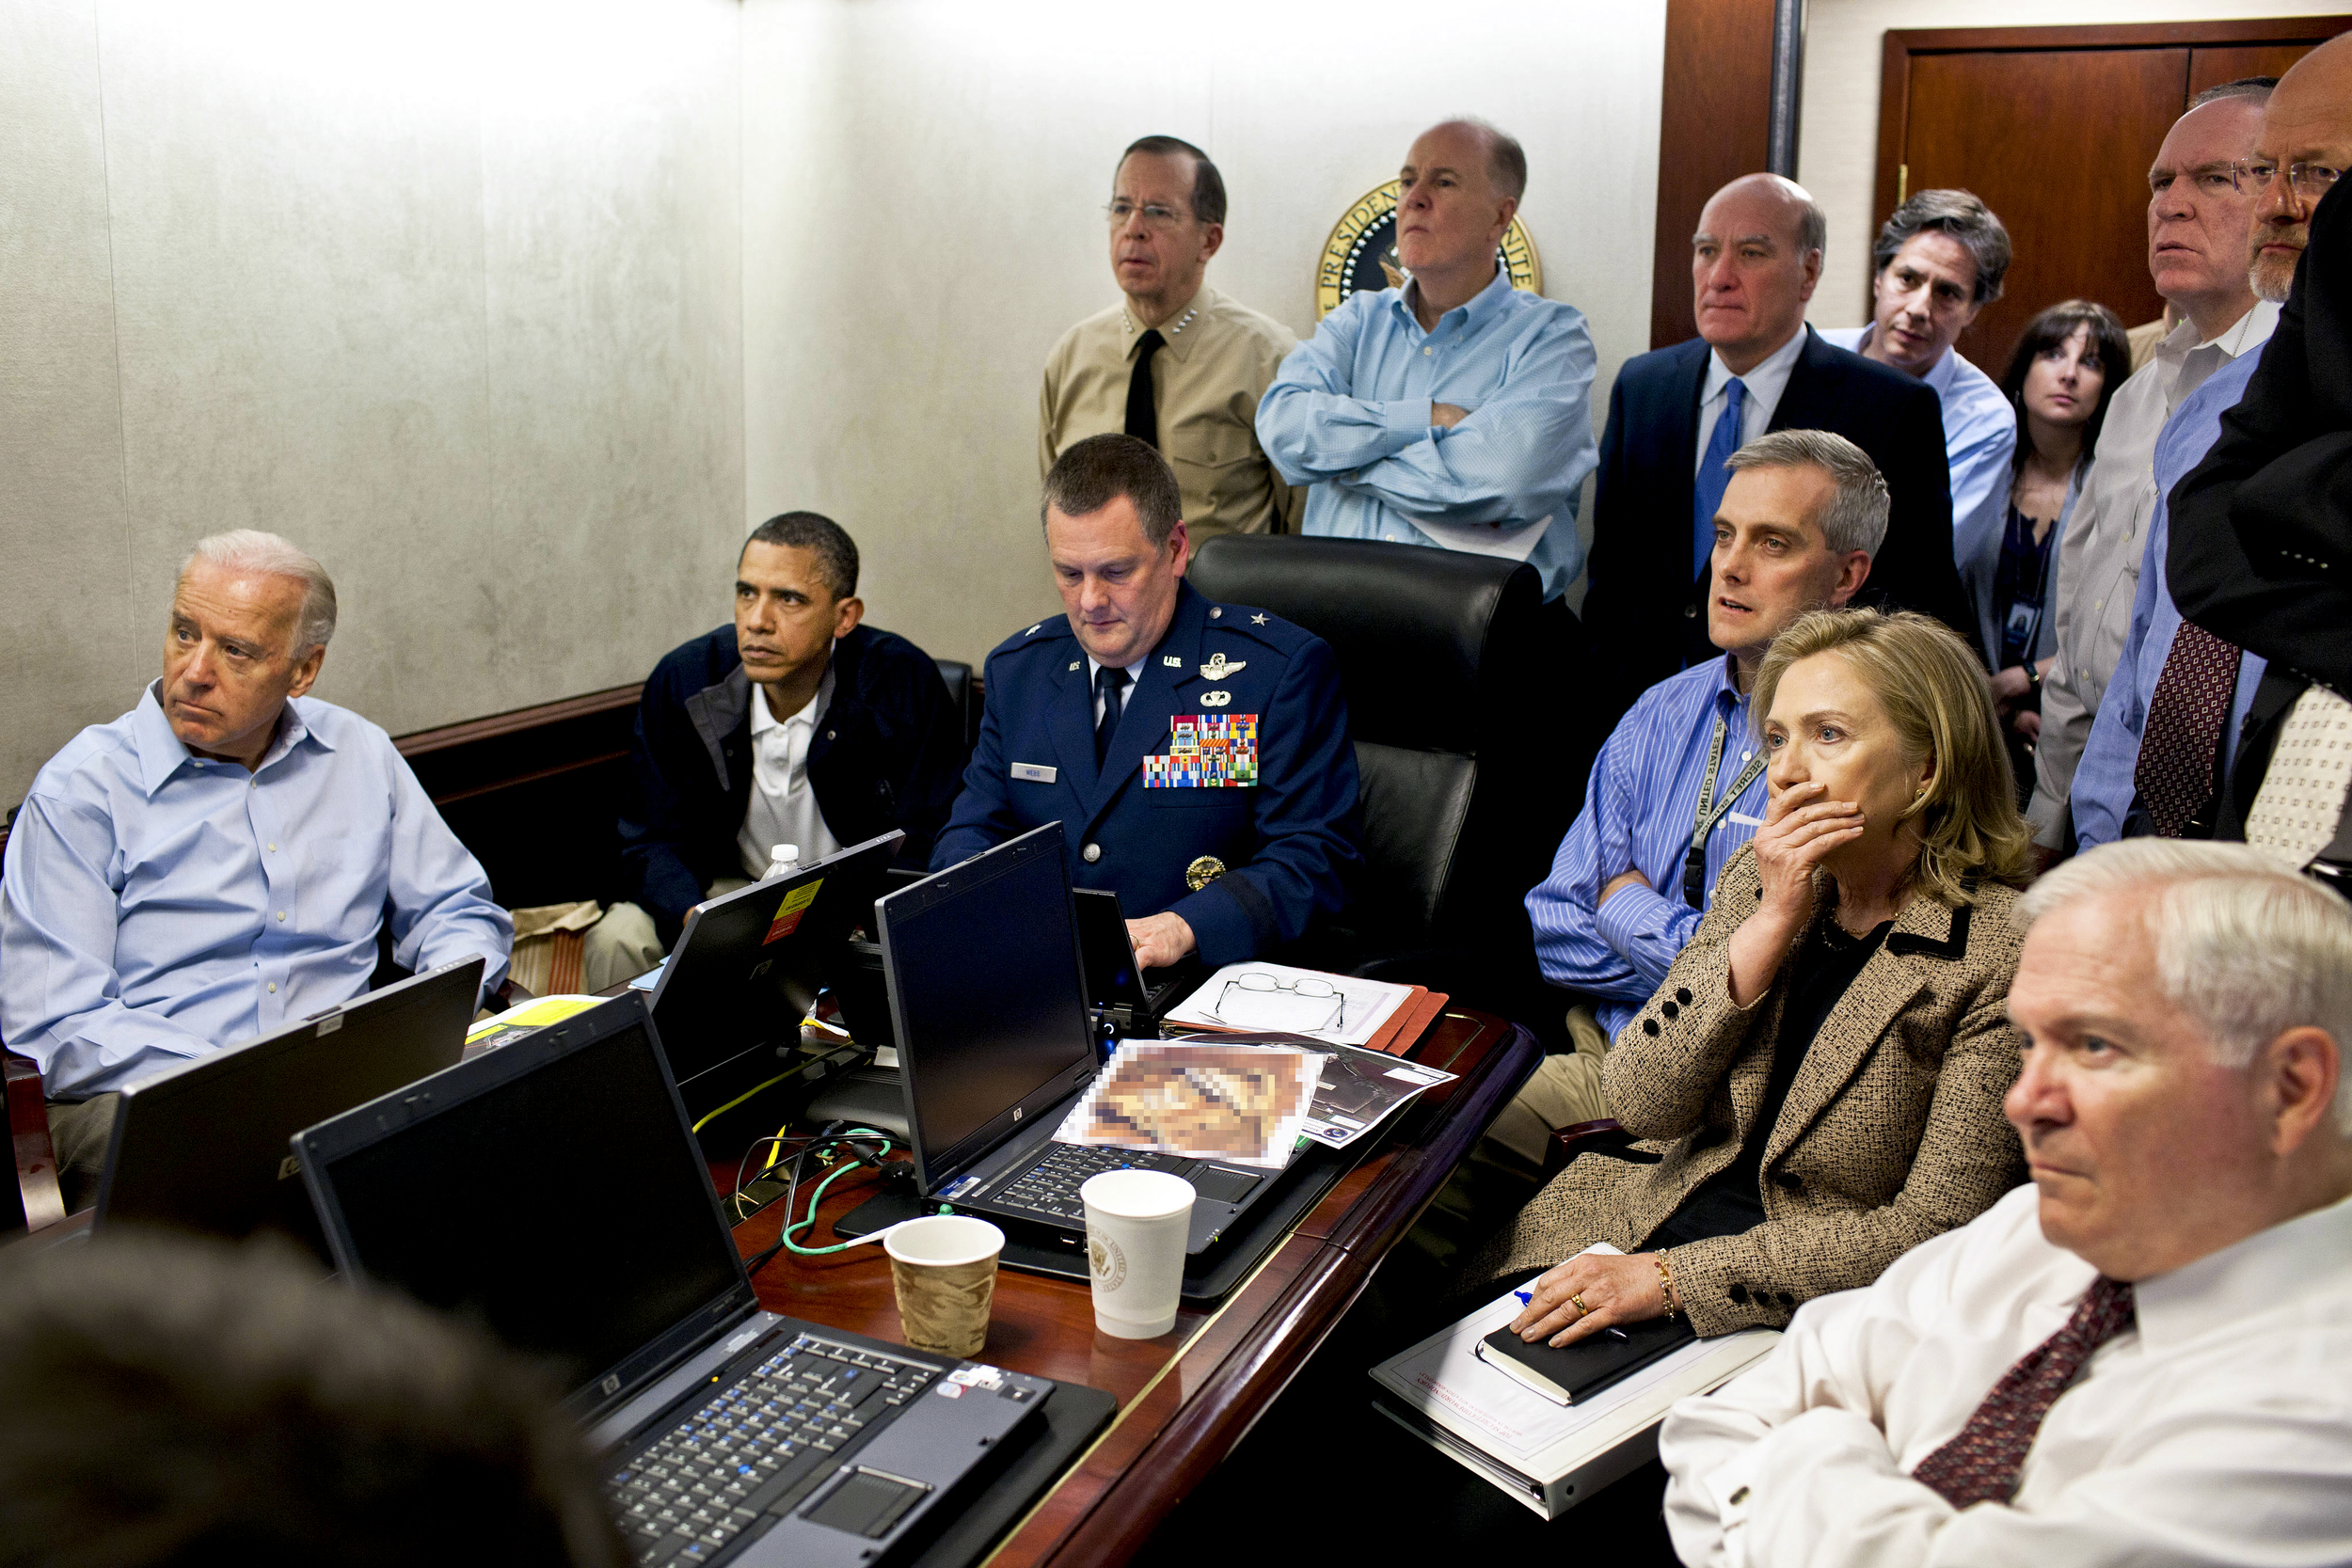 President Obama, Vice President Biden and Secretary Clinton react as US Navy Seals take out bin Laden.